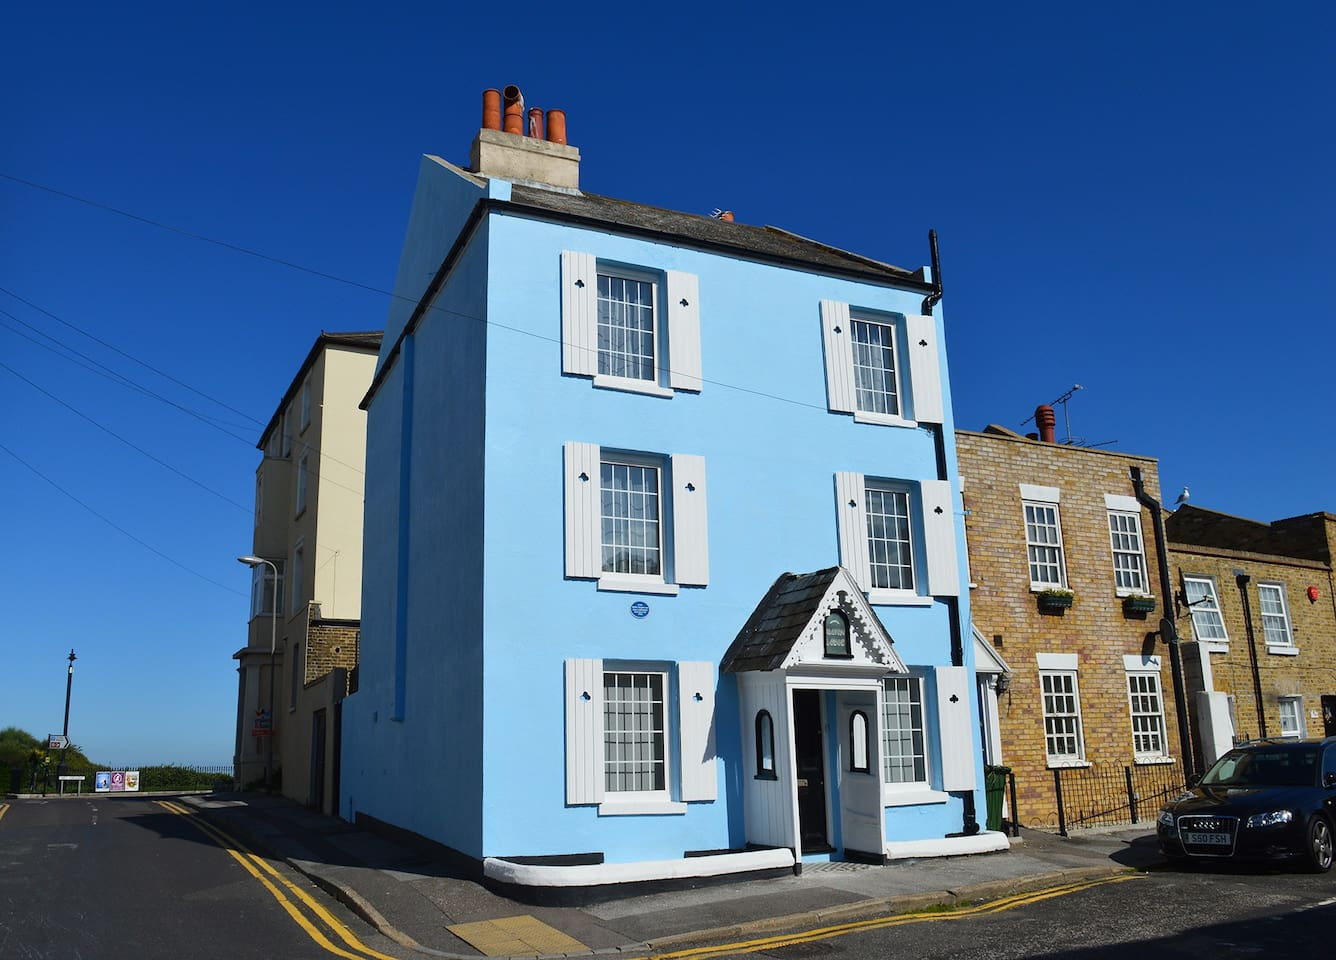 albion lodge margate houses for rent in margate england